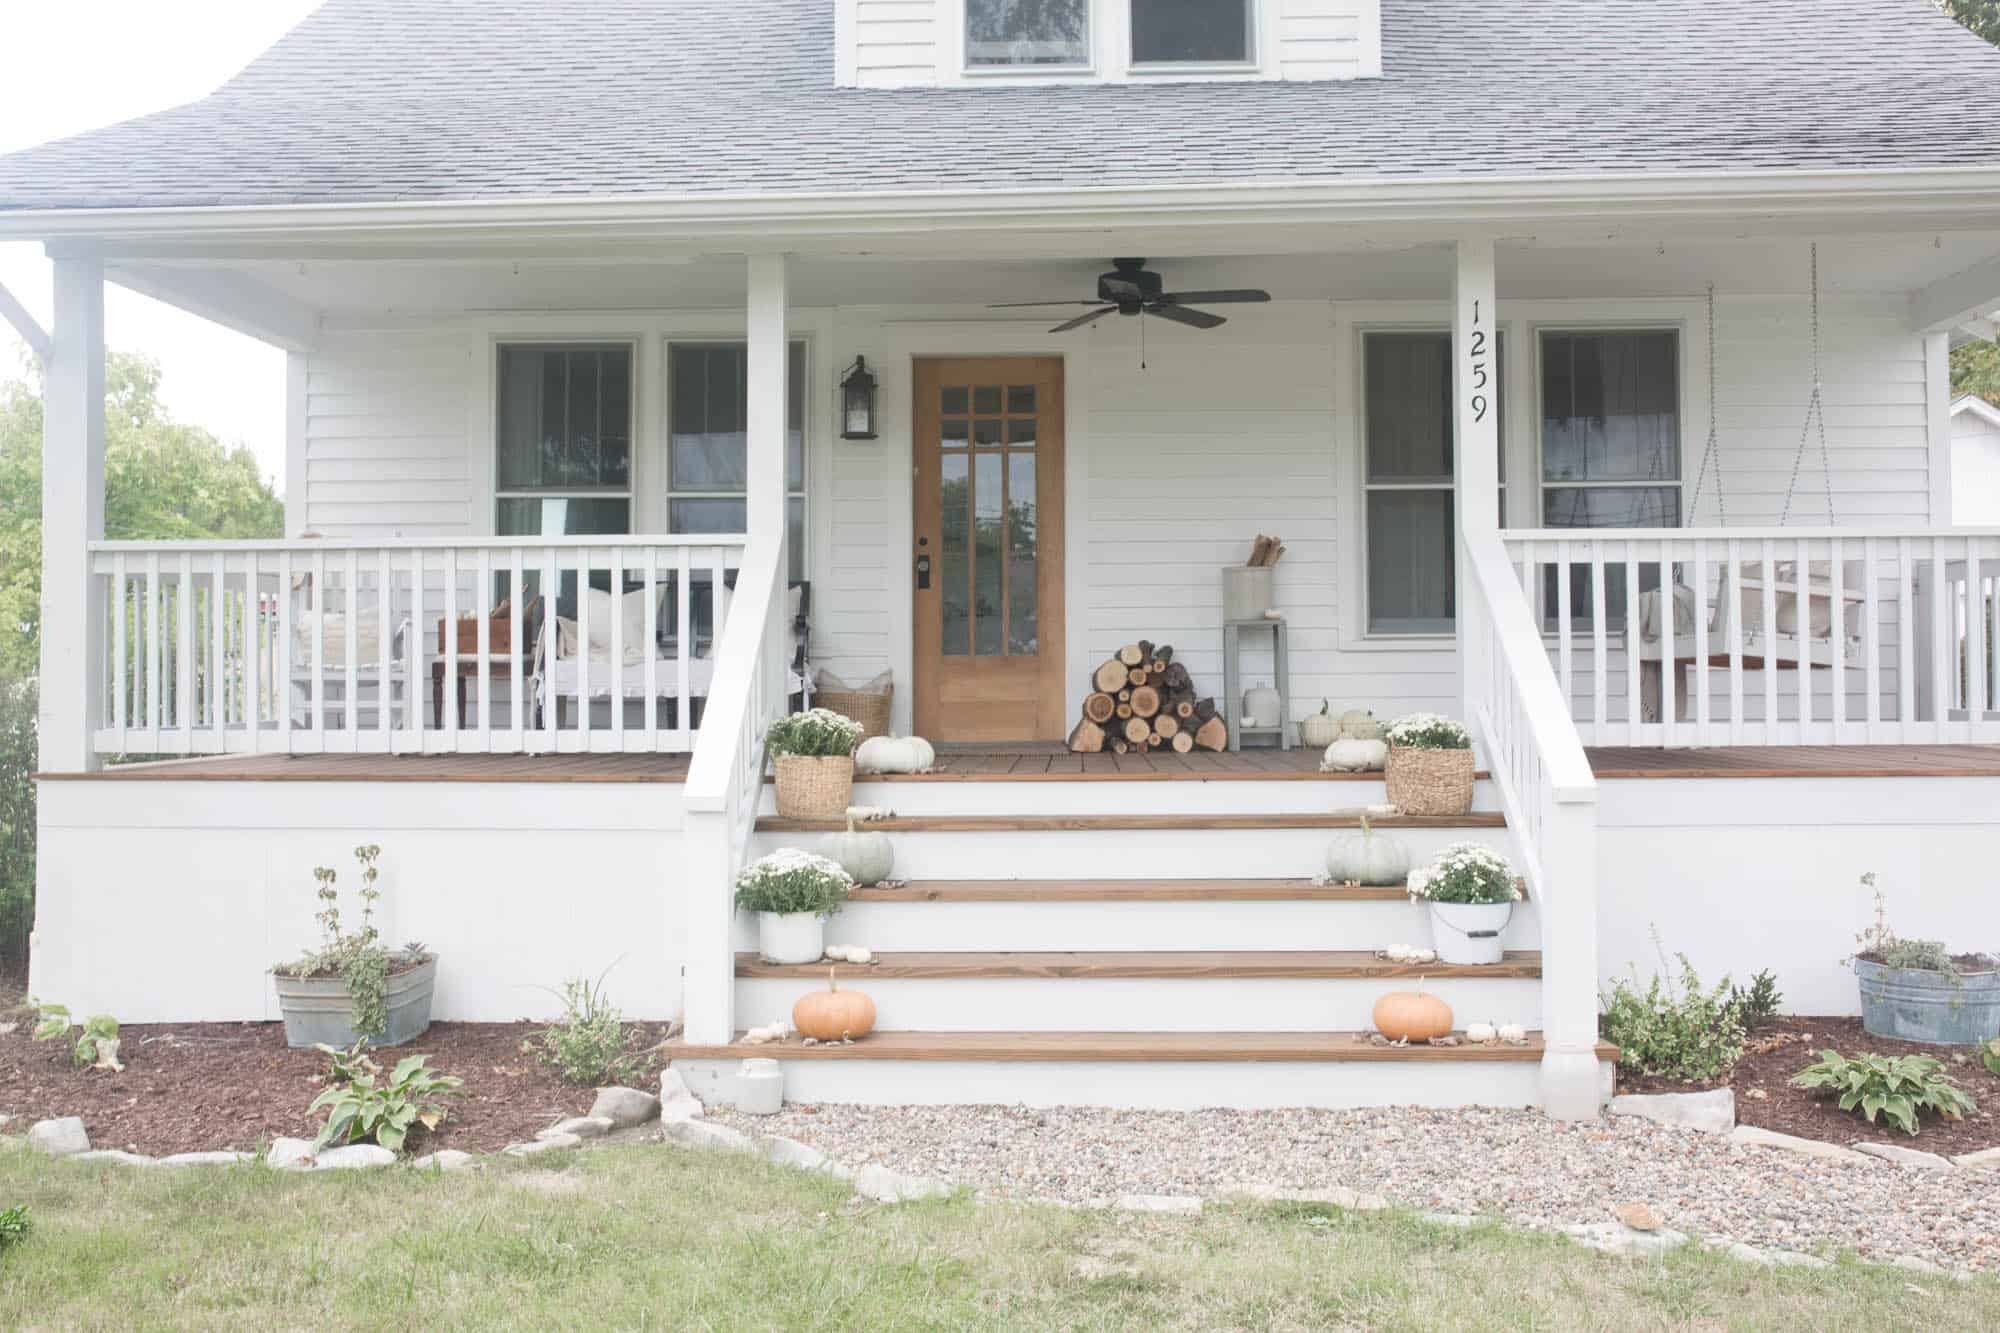 Simple Fall Farmhouse Front Porch Design Ideas from Farmhouse on Boone